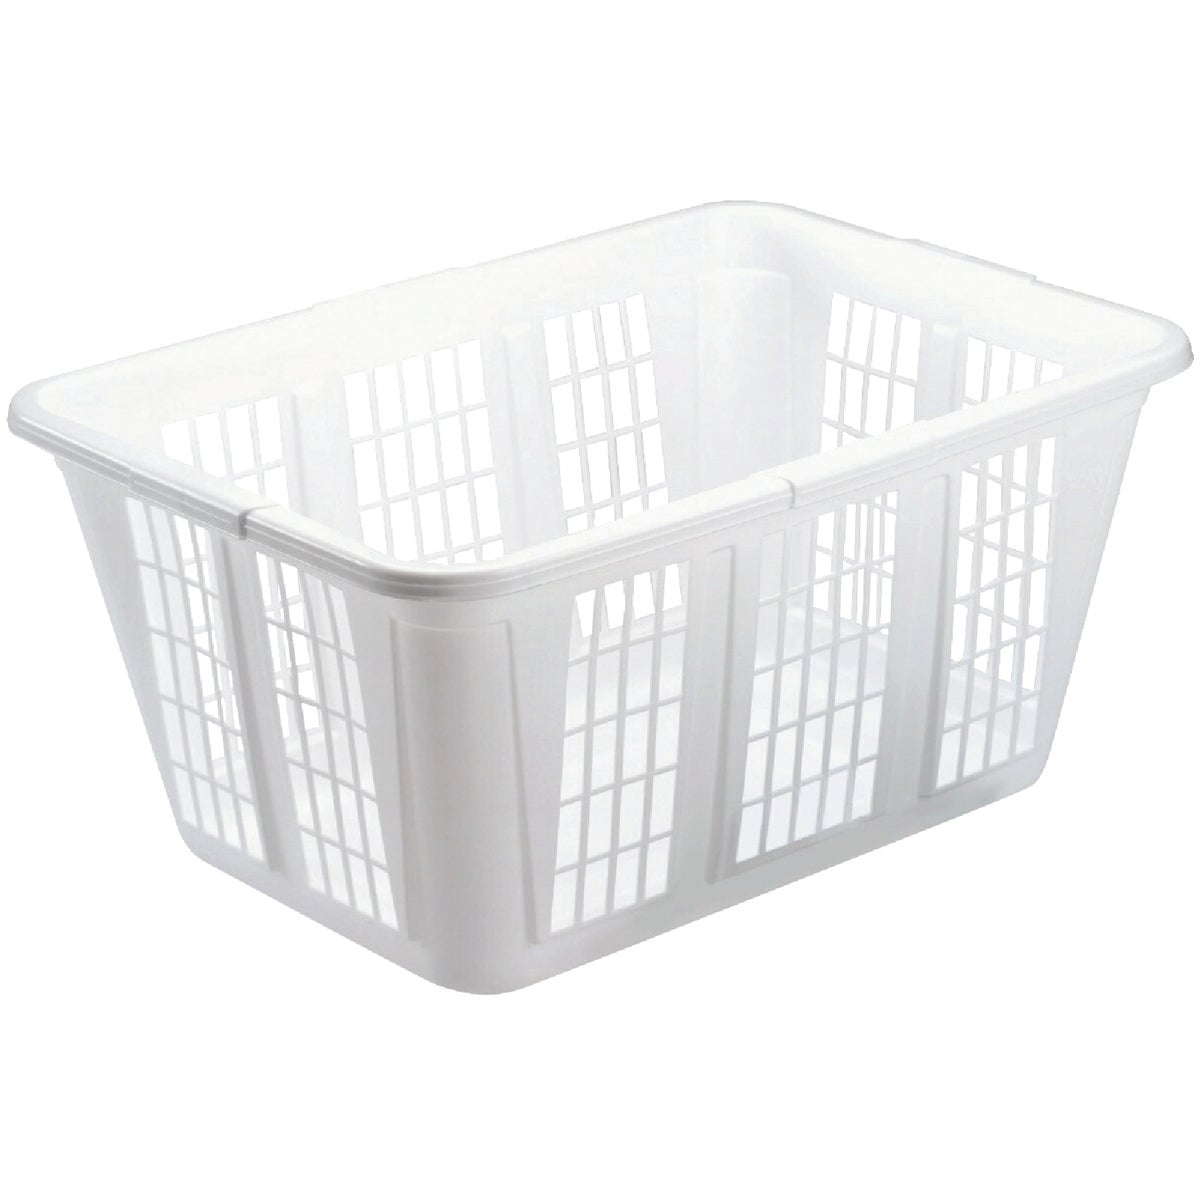 WHITE LAUNDRY BASKET - 296585WHT by Rubbermaid Home